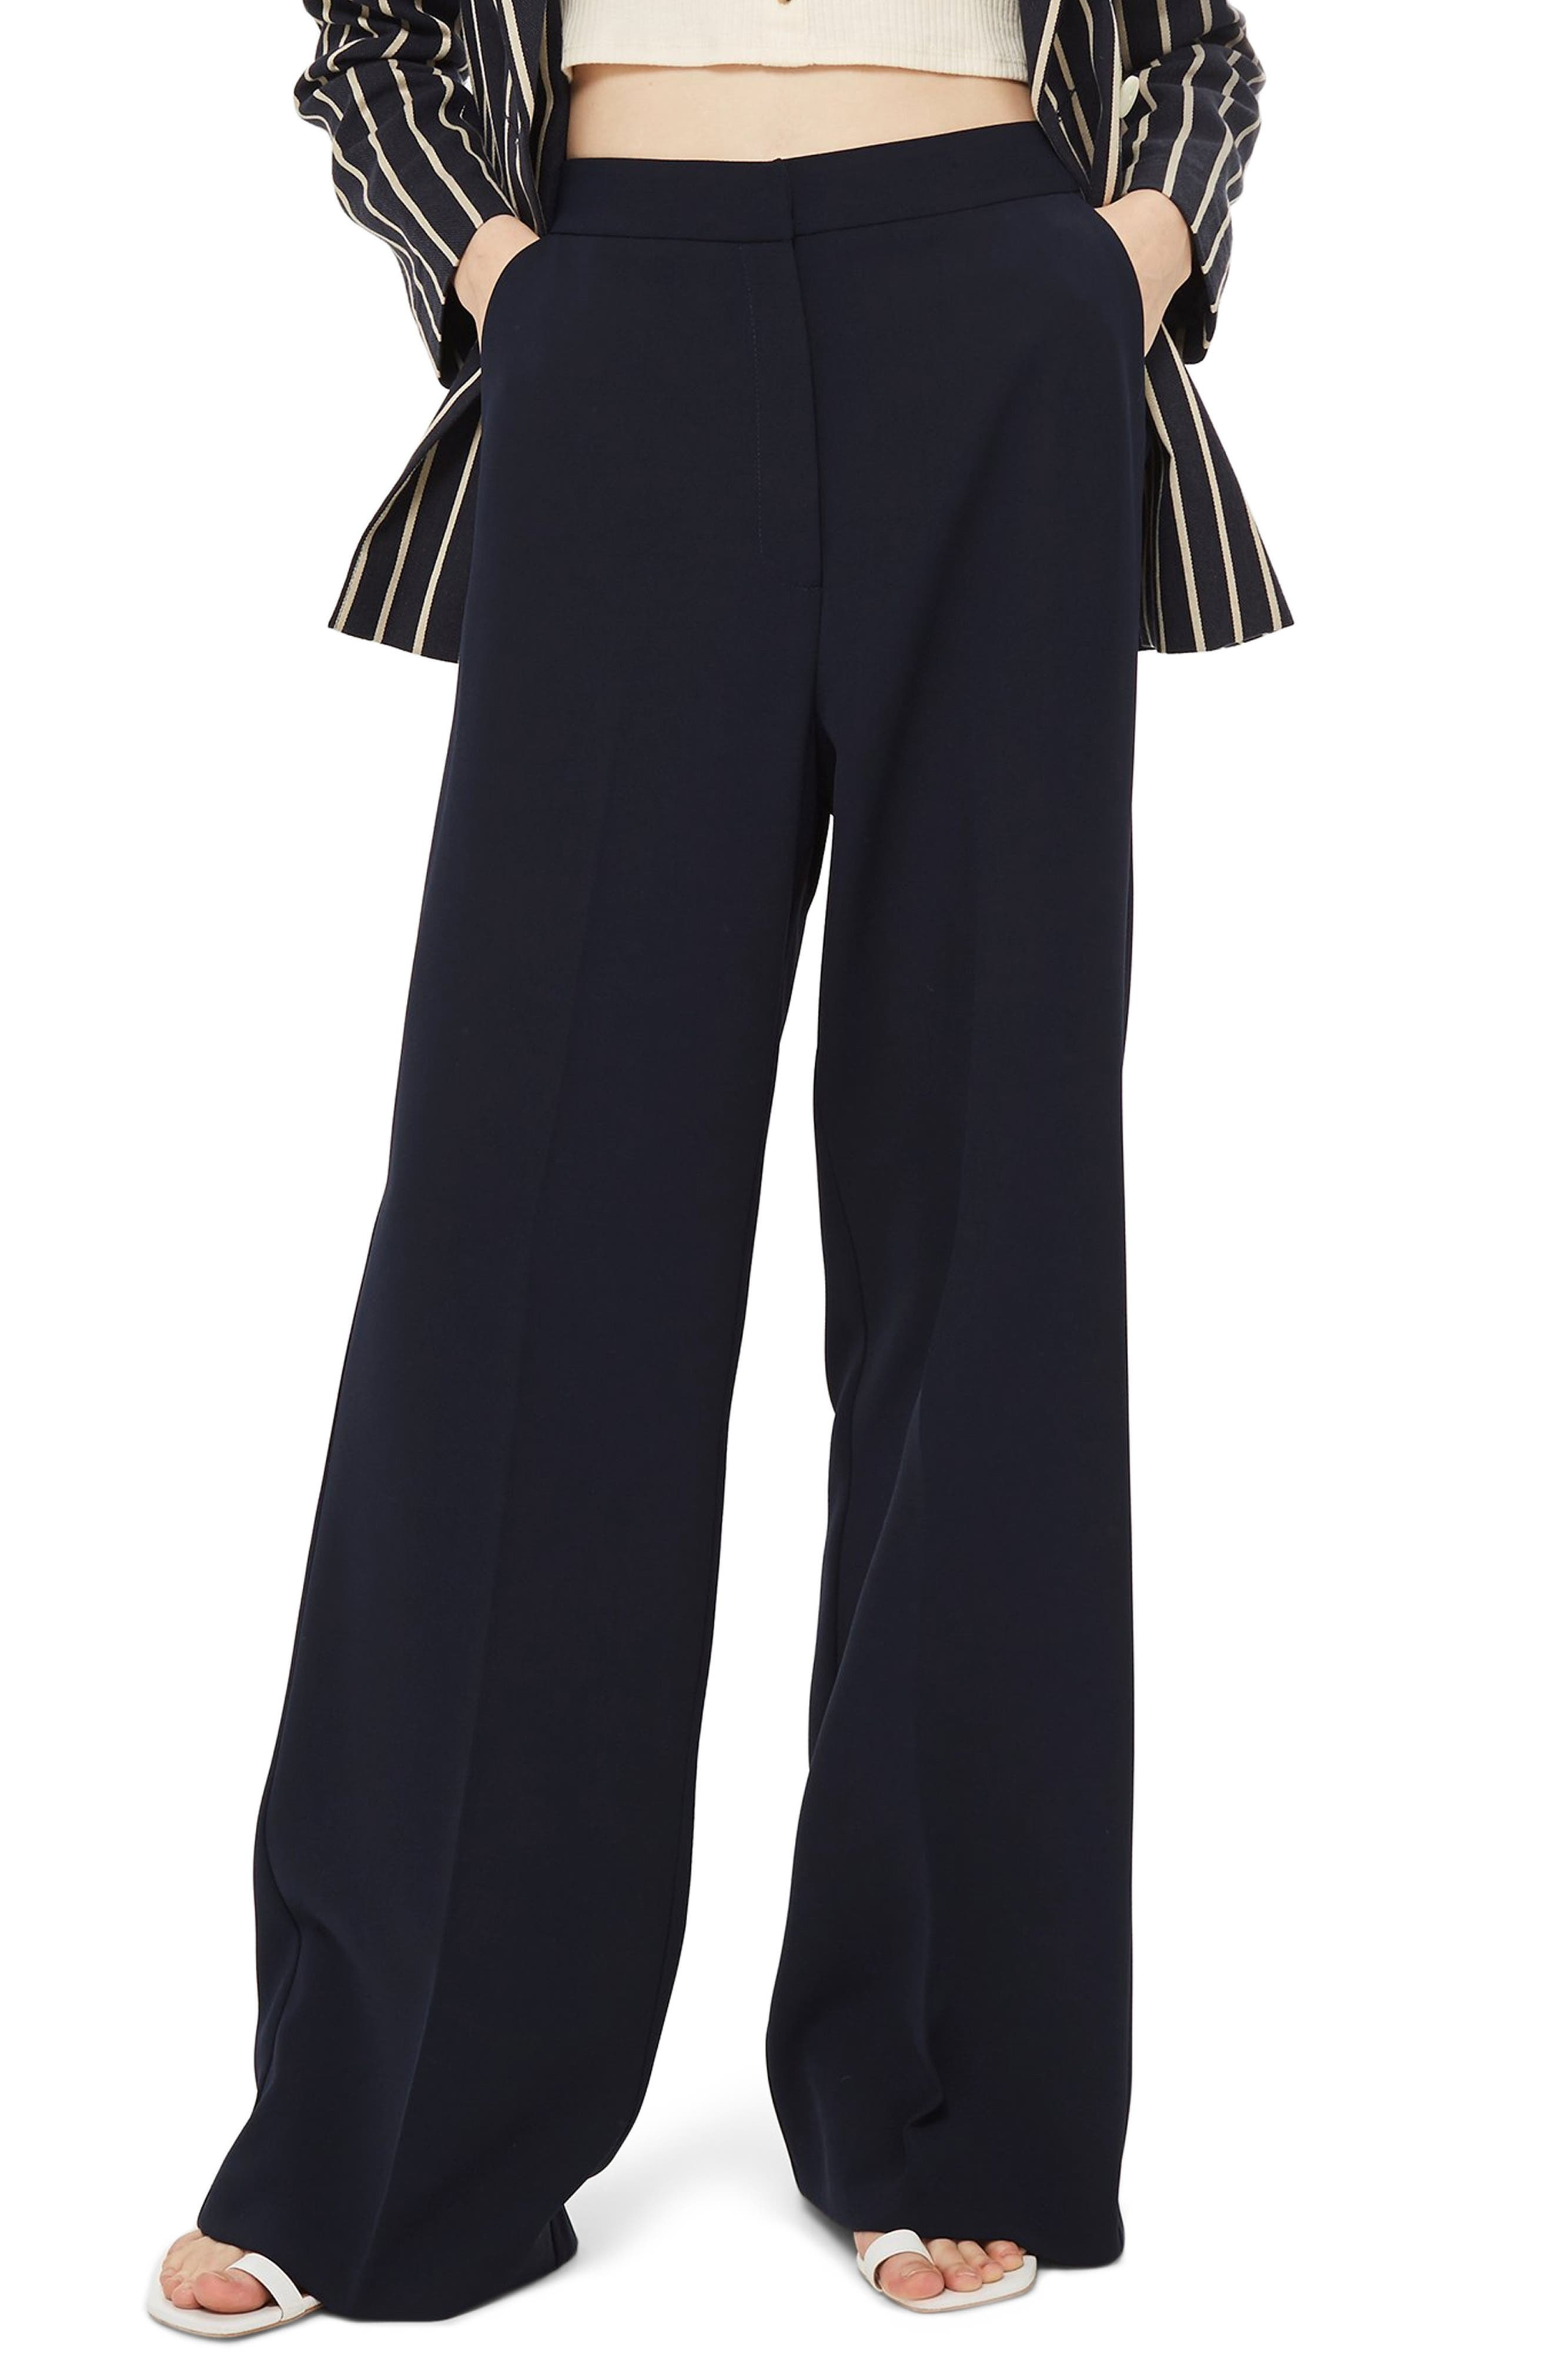 Clean High-Waist Wide Leg Trousers,                             Main thumbnail 1, color,                             NAVY BLUE